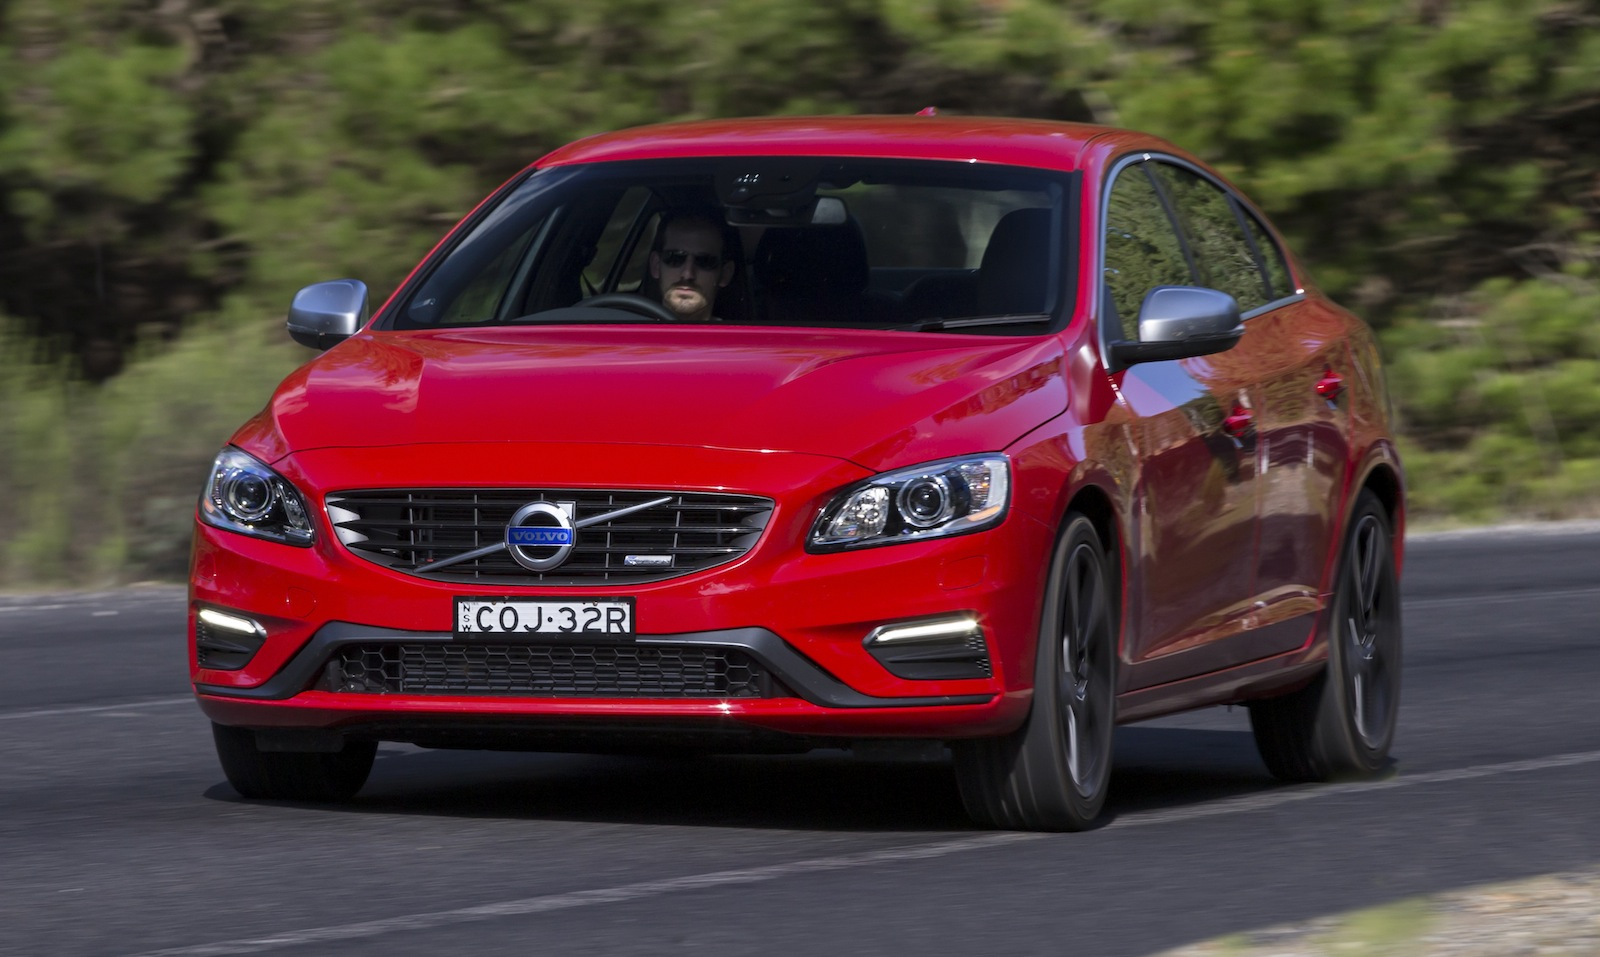 volvo s60 v60 update pricing and specifications photos 1 of 6. Black Bedroom Furniture Sets. Home Design Ideas